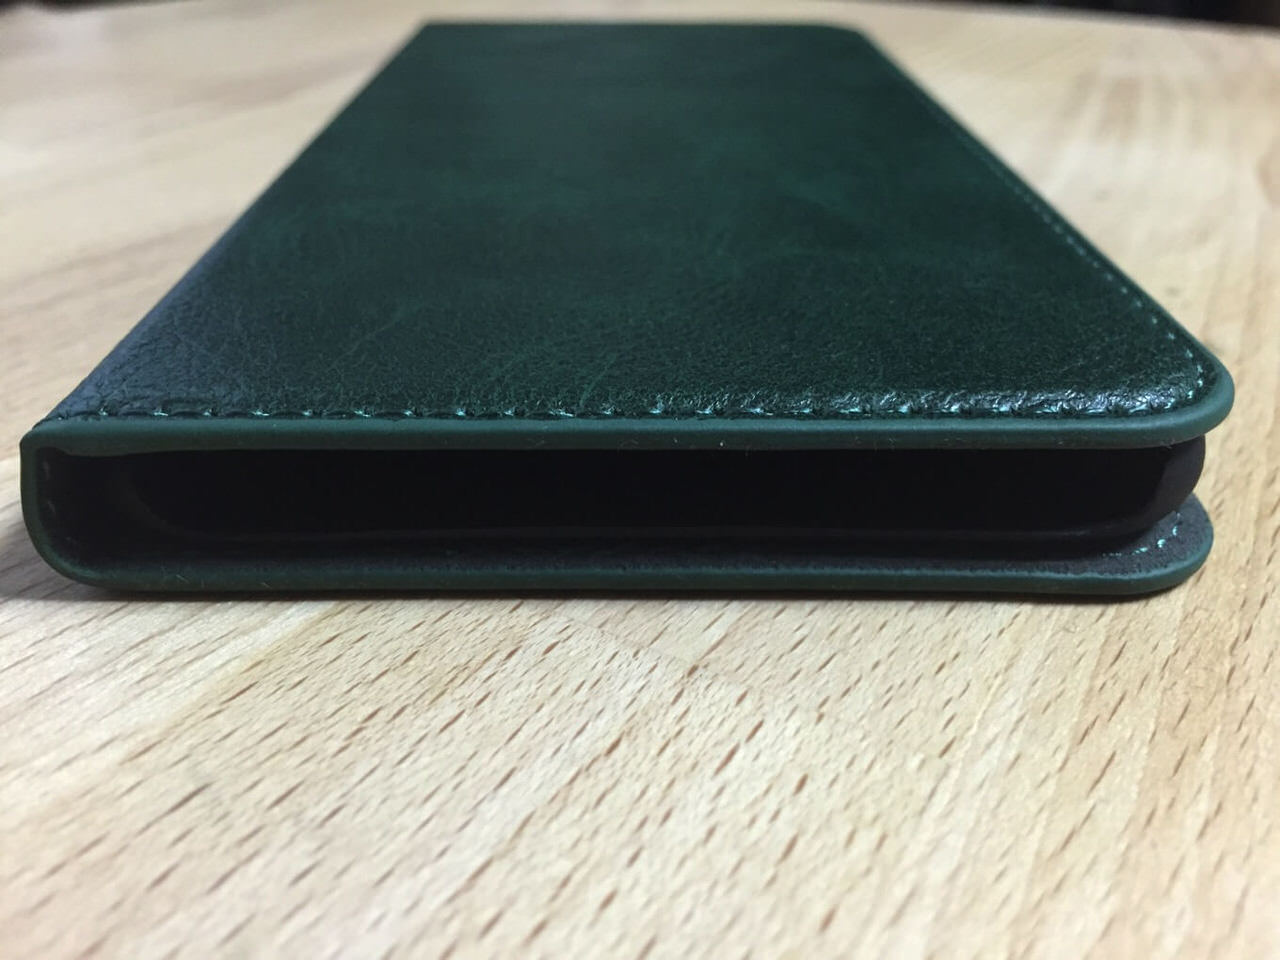 iphone6splus-notebook-case-review-6